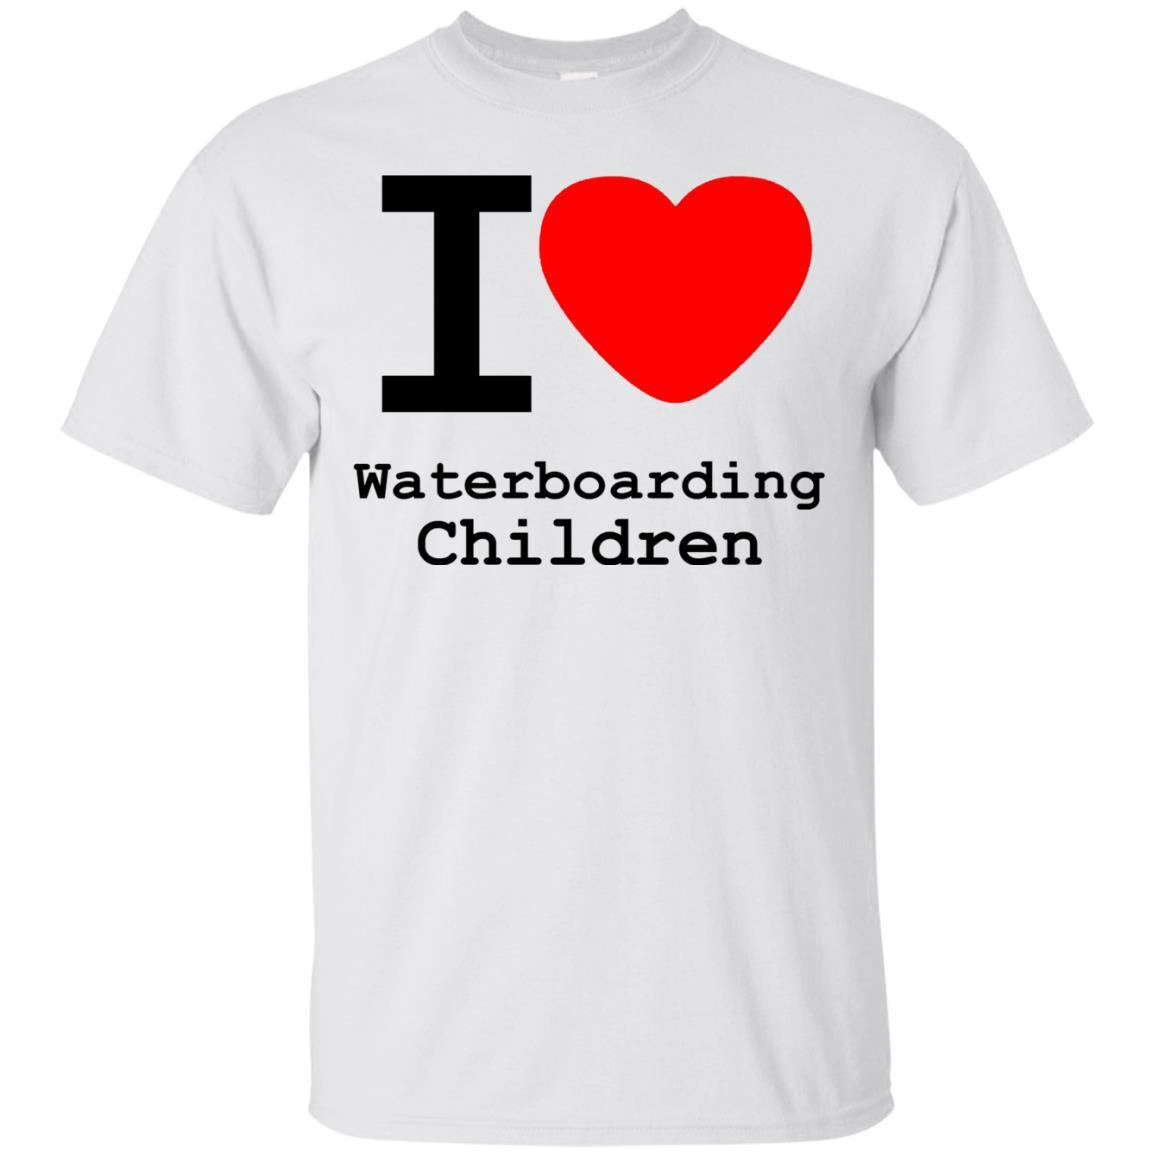 I love Waterboarding Children T-Shirt White / 5XL